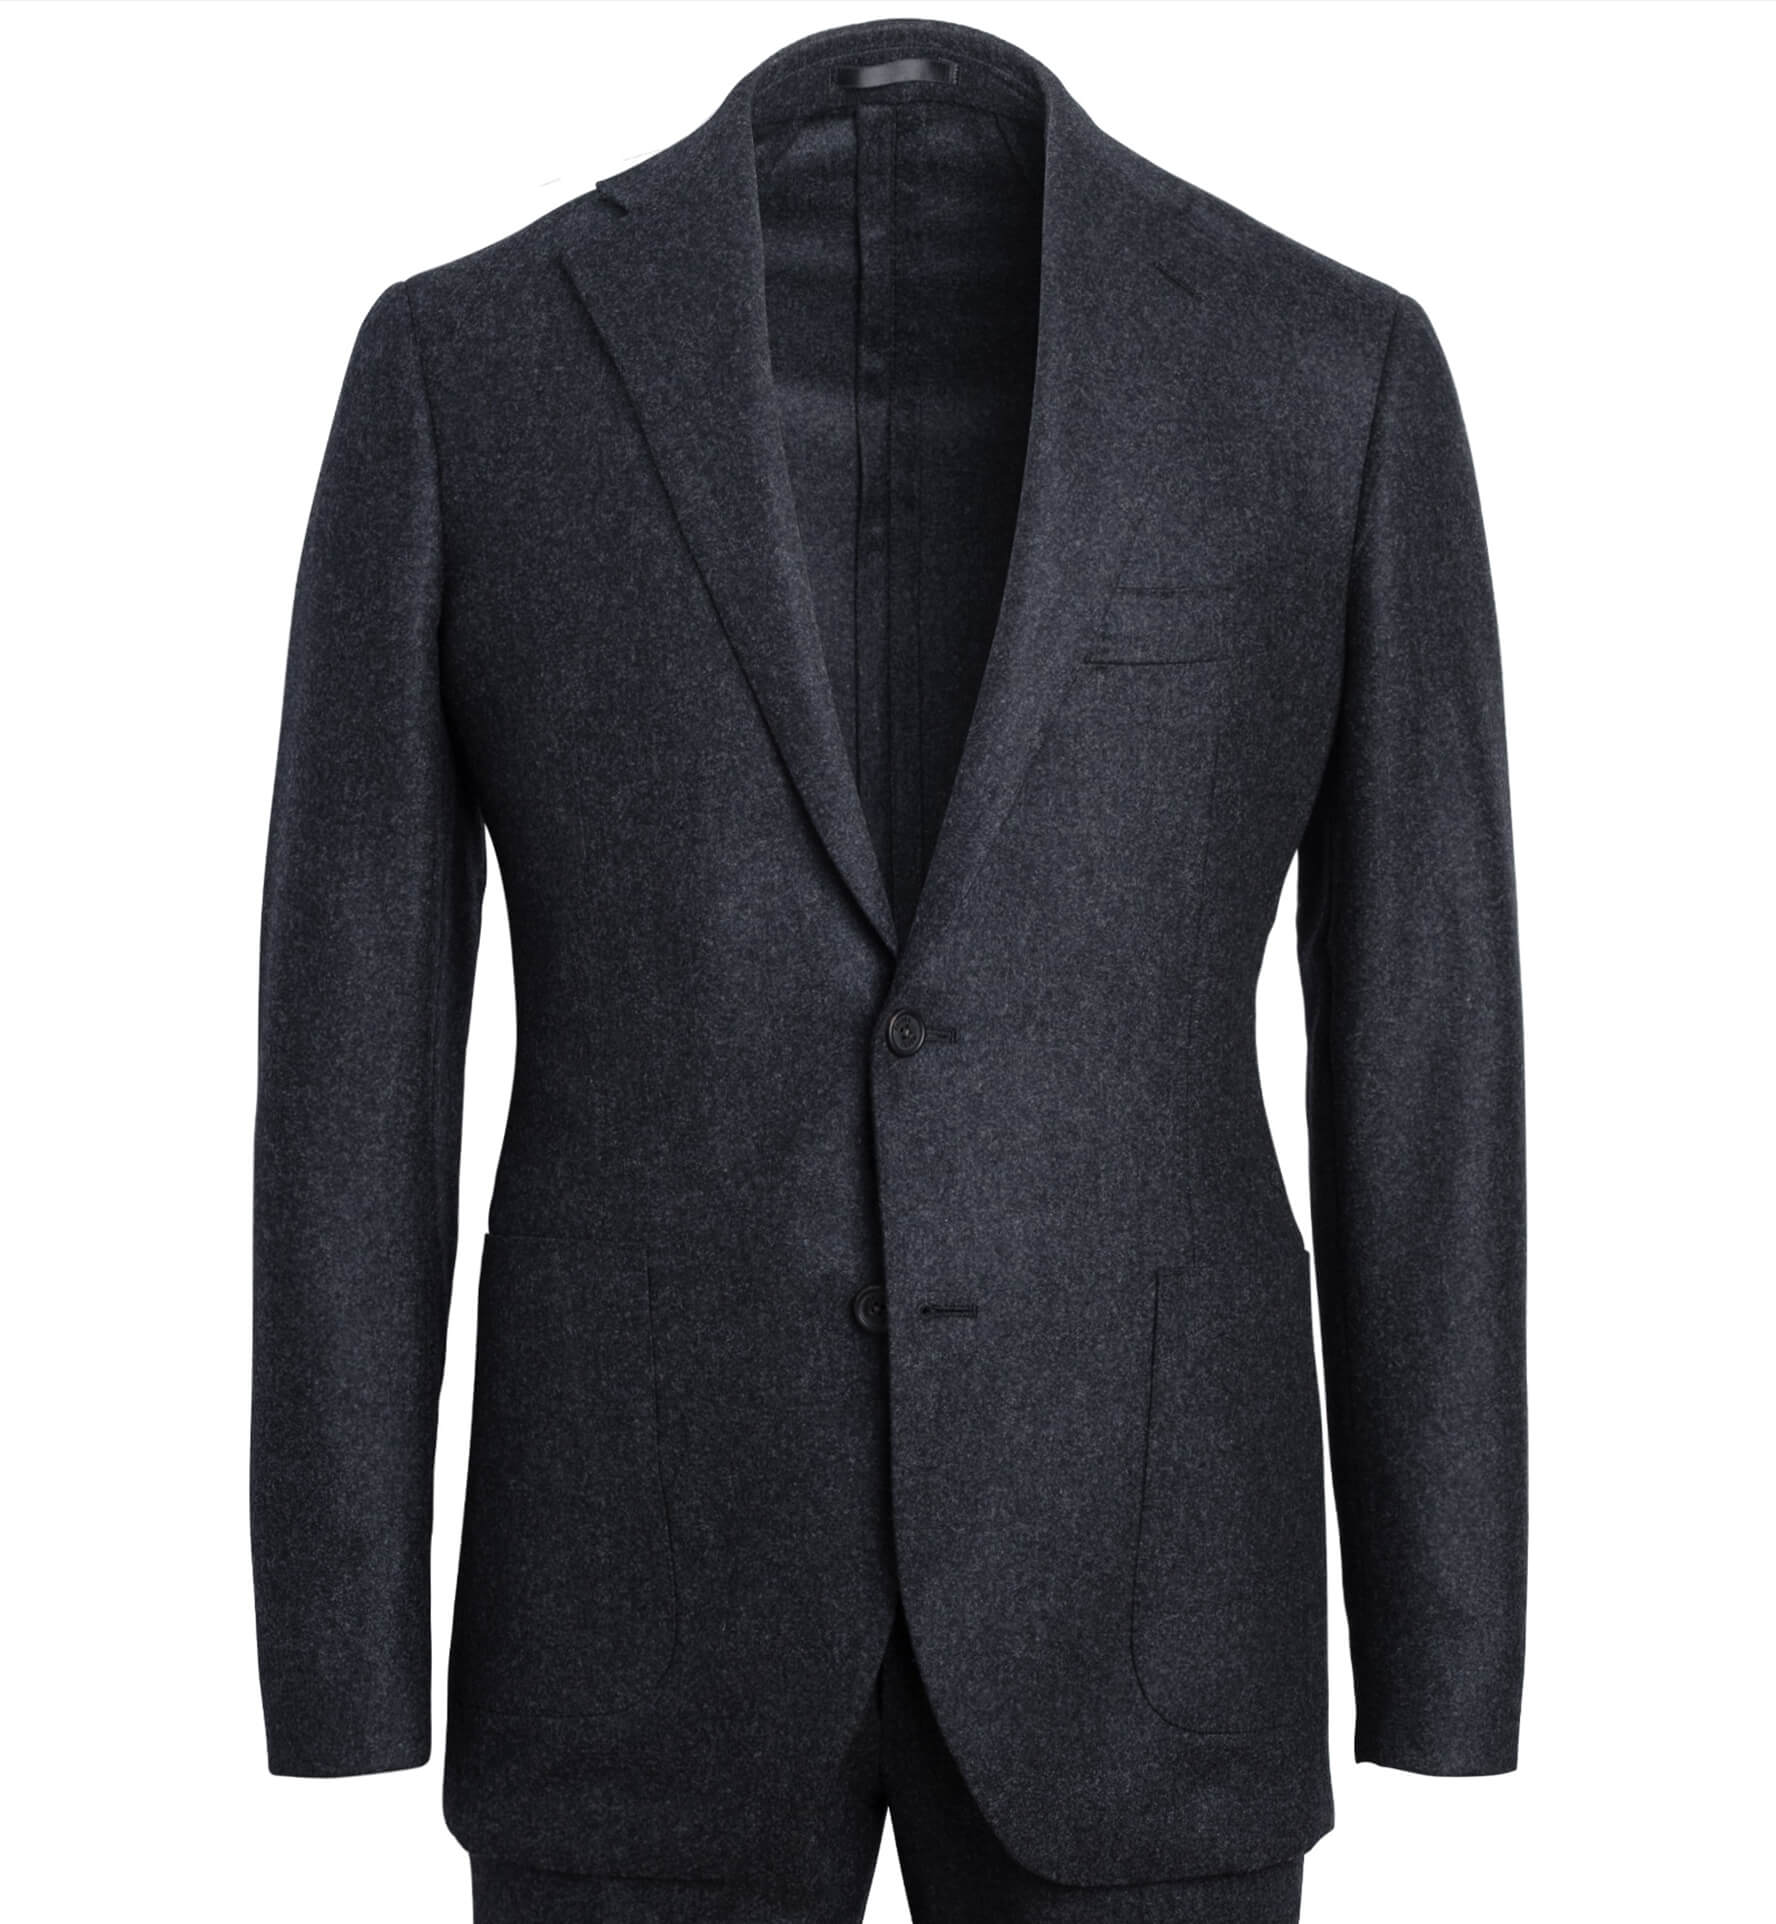 Zoom Image of Bedford Charcoal Wool Flannel Suit Jacket